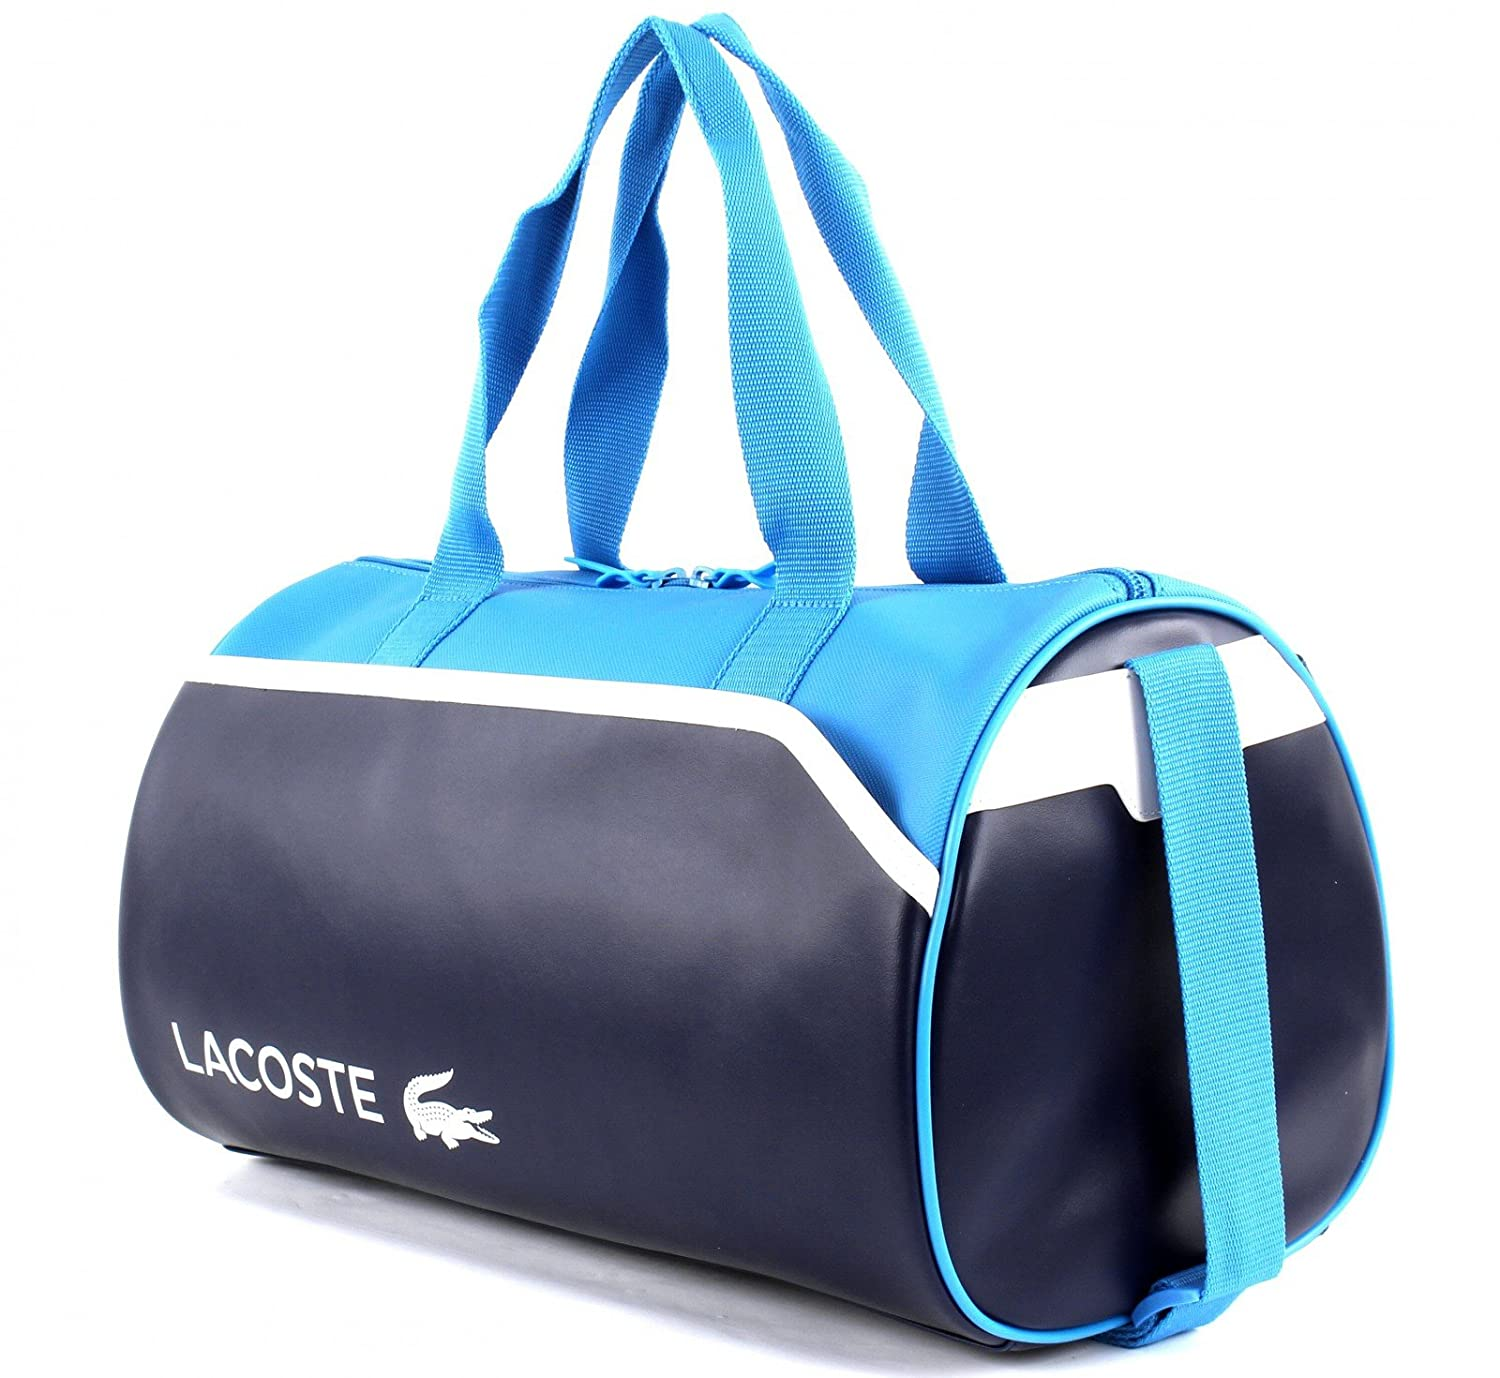 LACOSTE Ultimum Roll Bag Peacoat Blithe White: Amazon.es: Zapatos y complementos